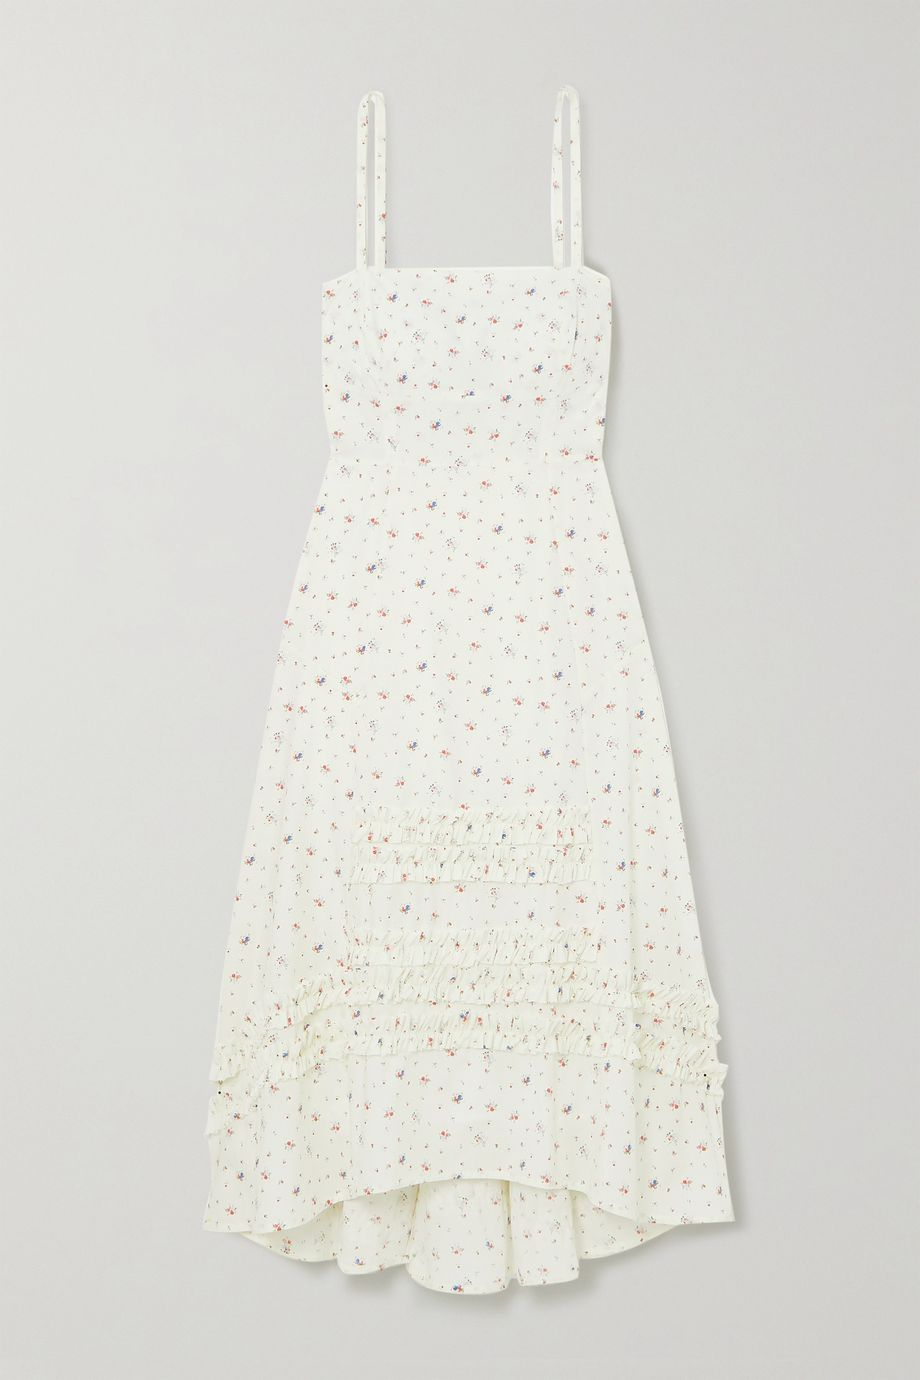 Molly Goddard Ruffled floral-print cotton midi dress